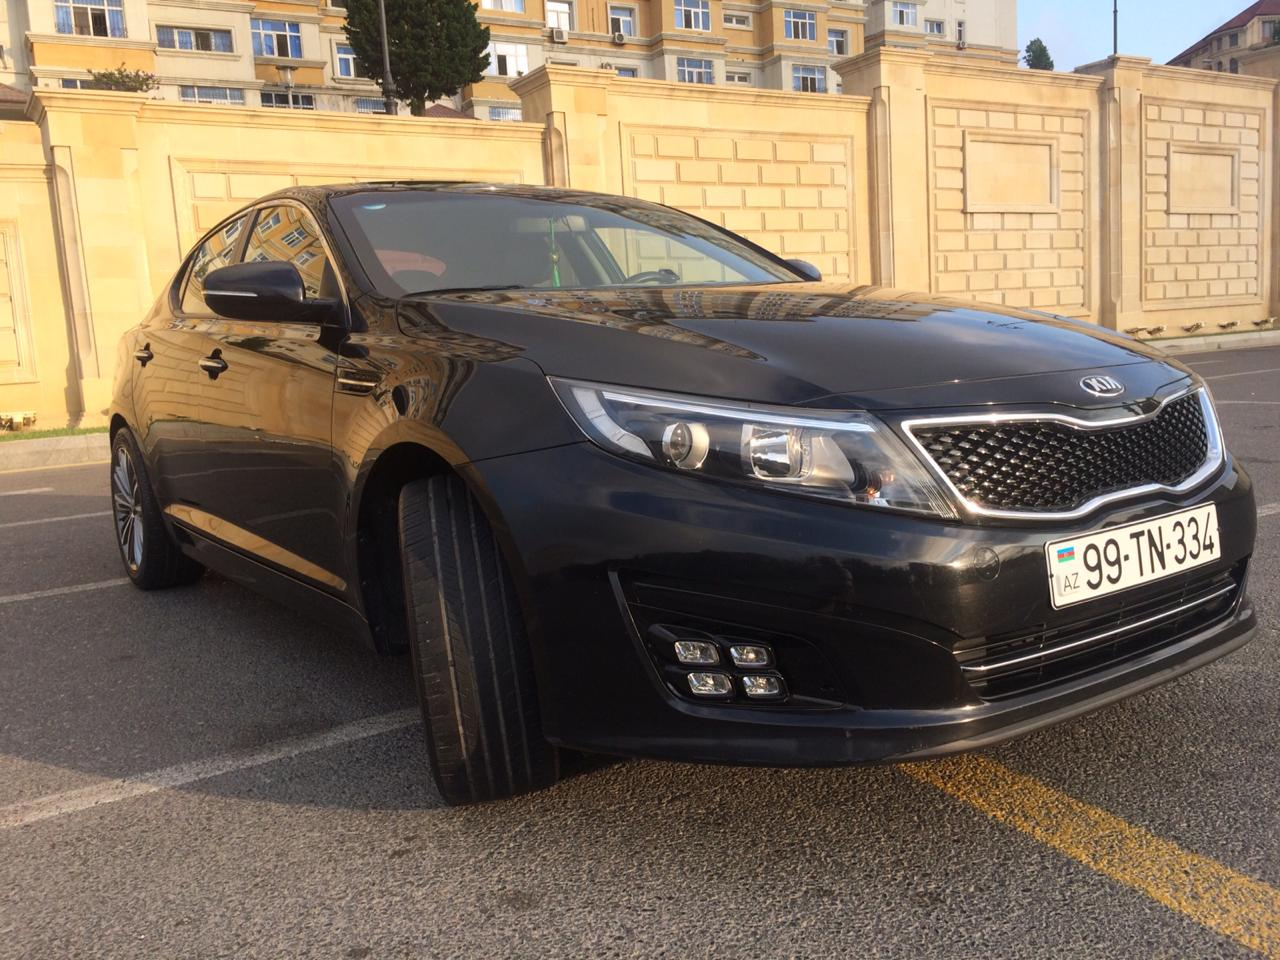 Kia Optima 2.0(lt) 2014 Second hand  $25500